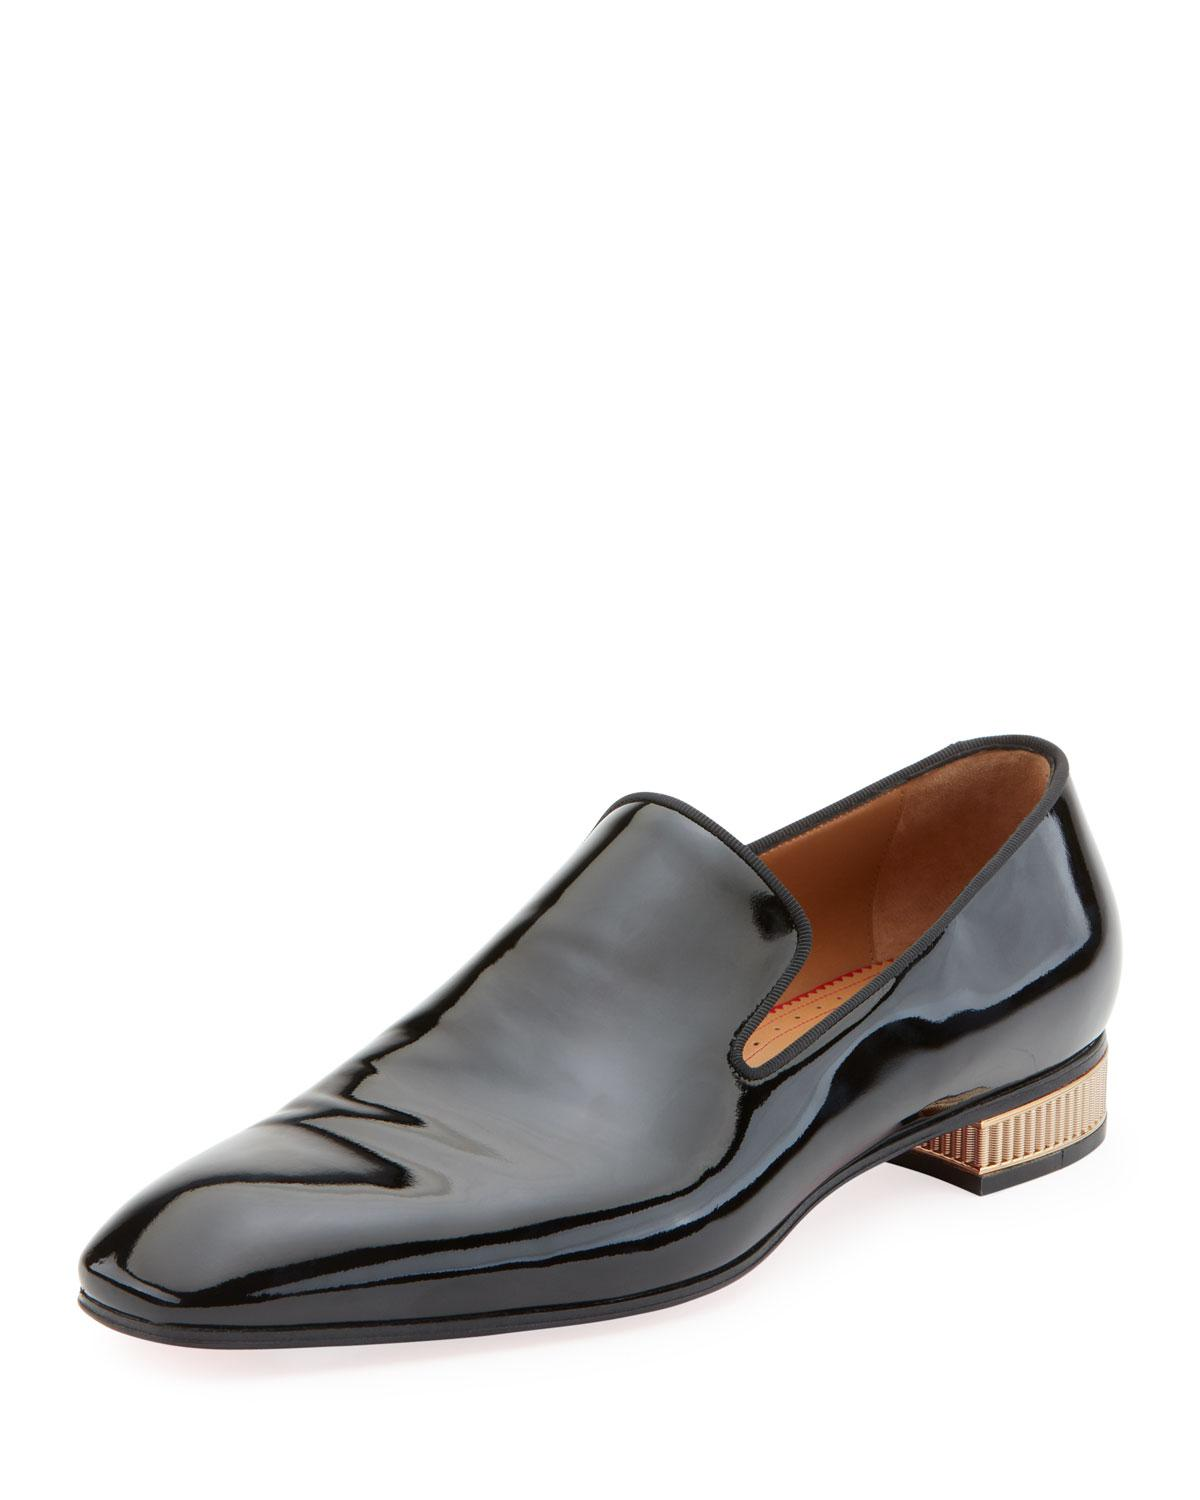 25ed12635bf Lyst - Christian Louboutin Men s Colonnaki Patent Leather Loafer in ...